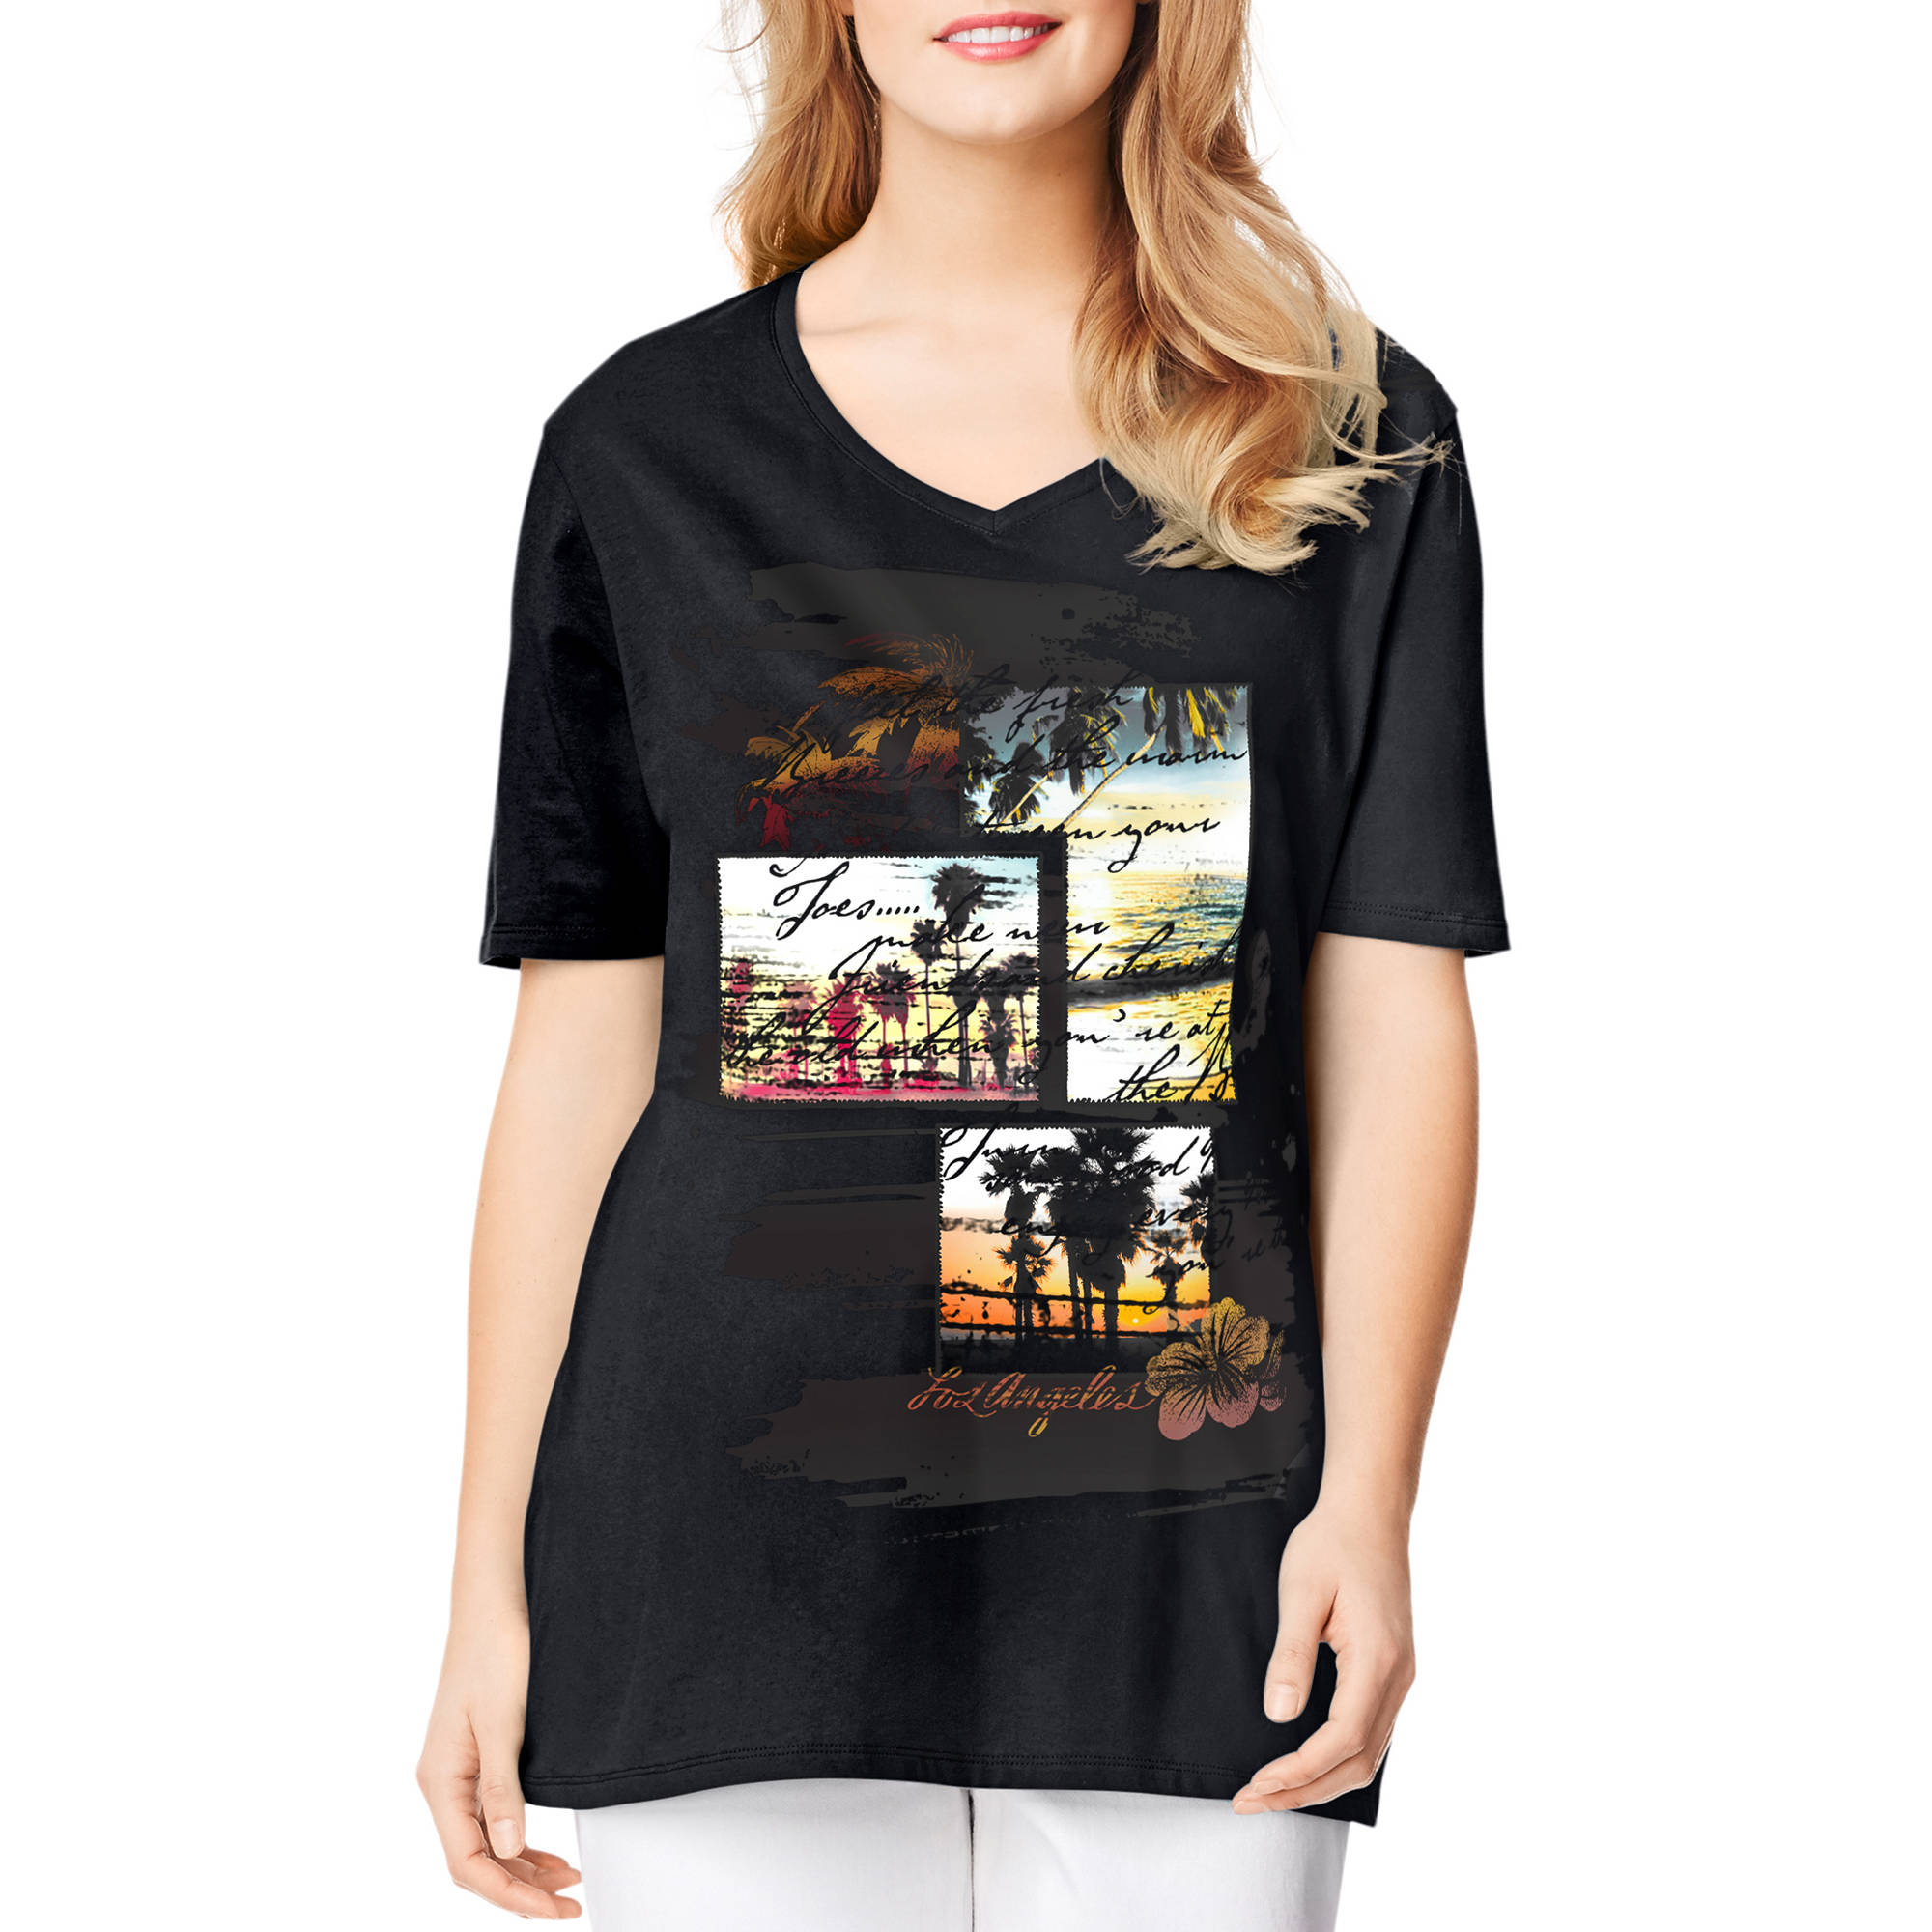 Just My Size Plus-Size Women's Lightweight Graphic V-neck